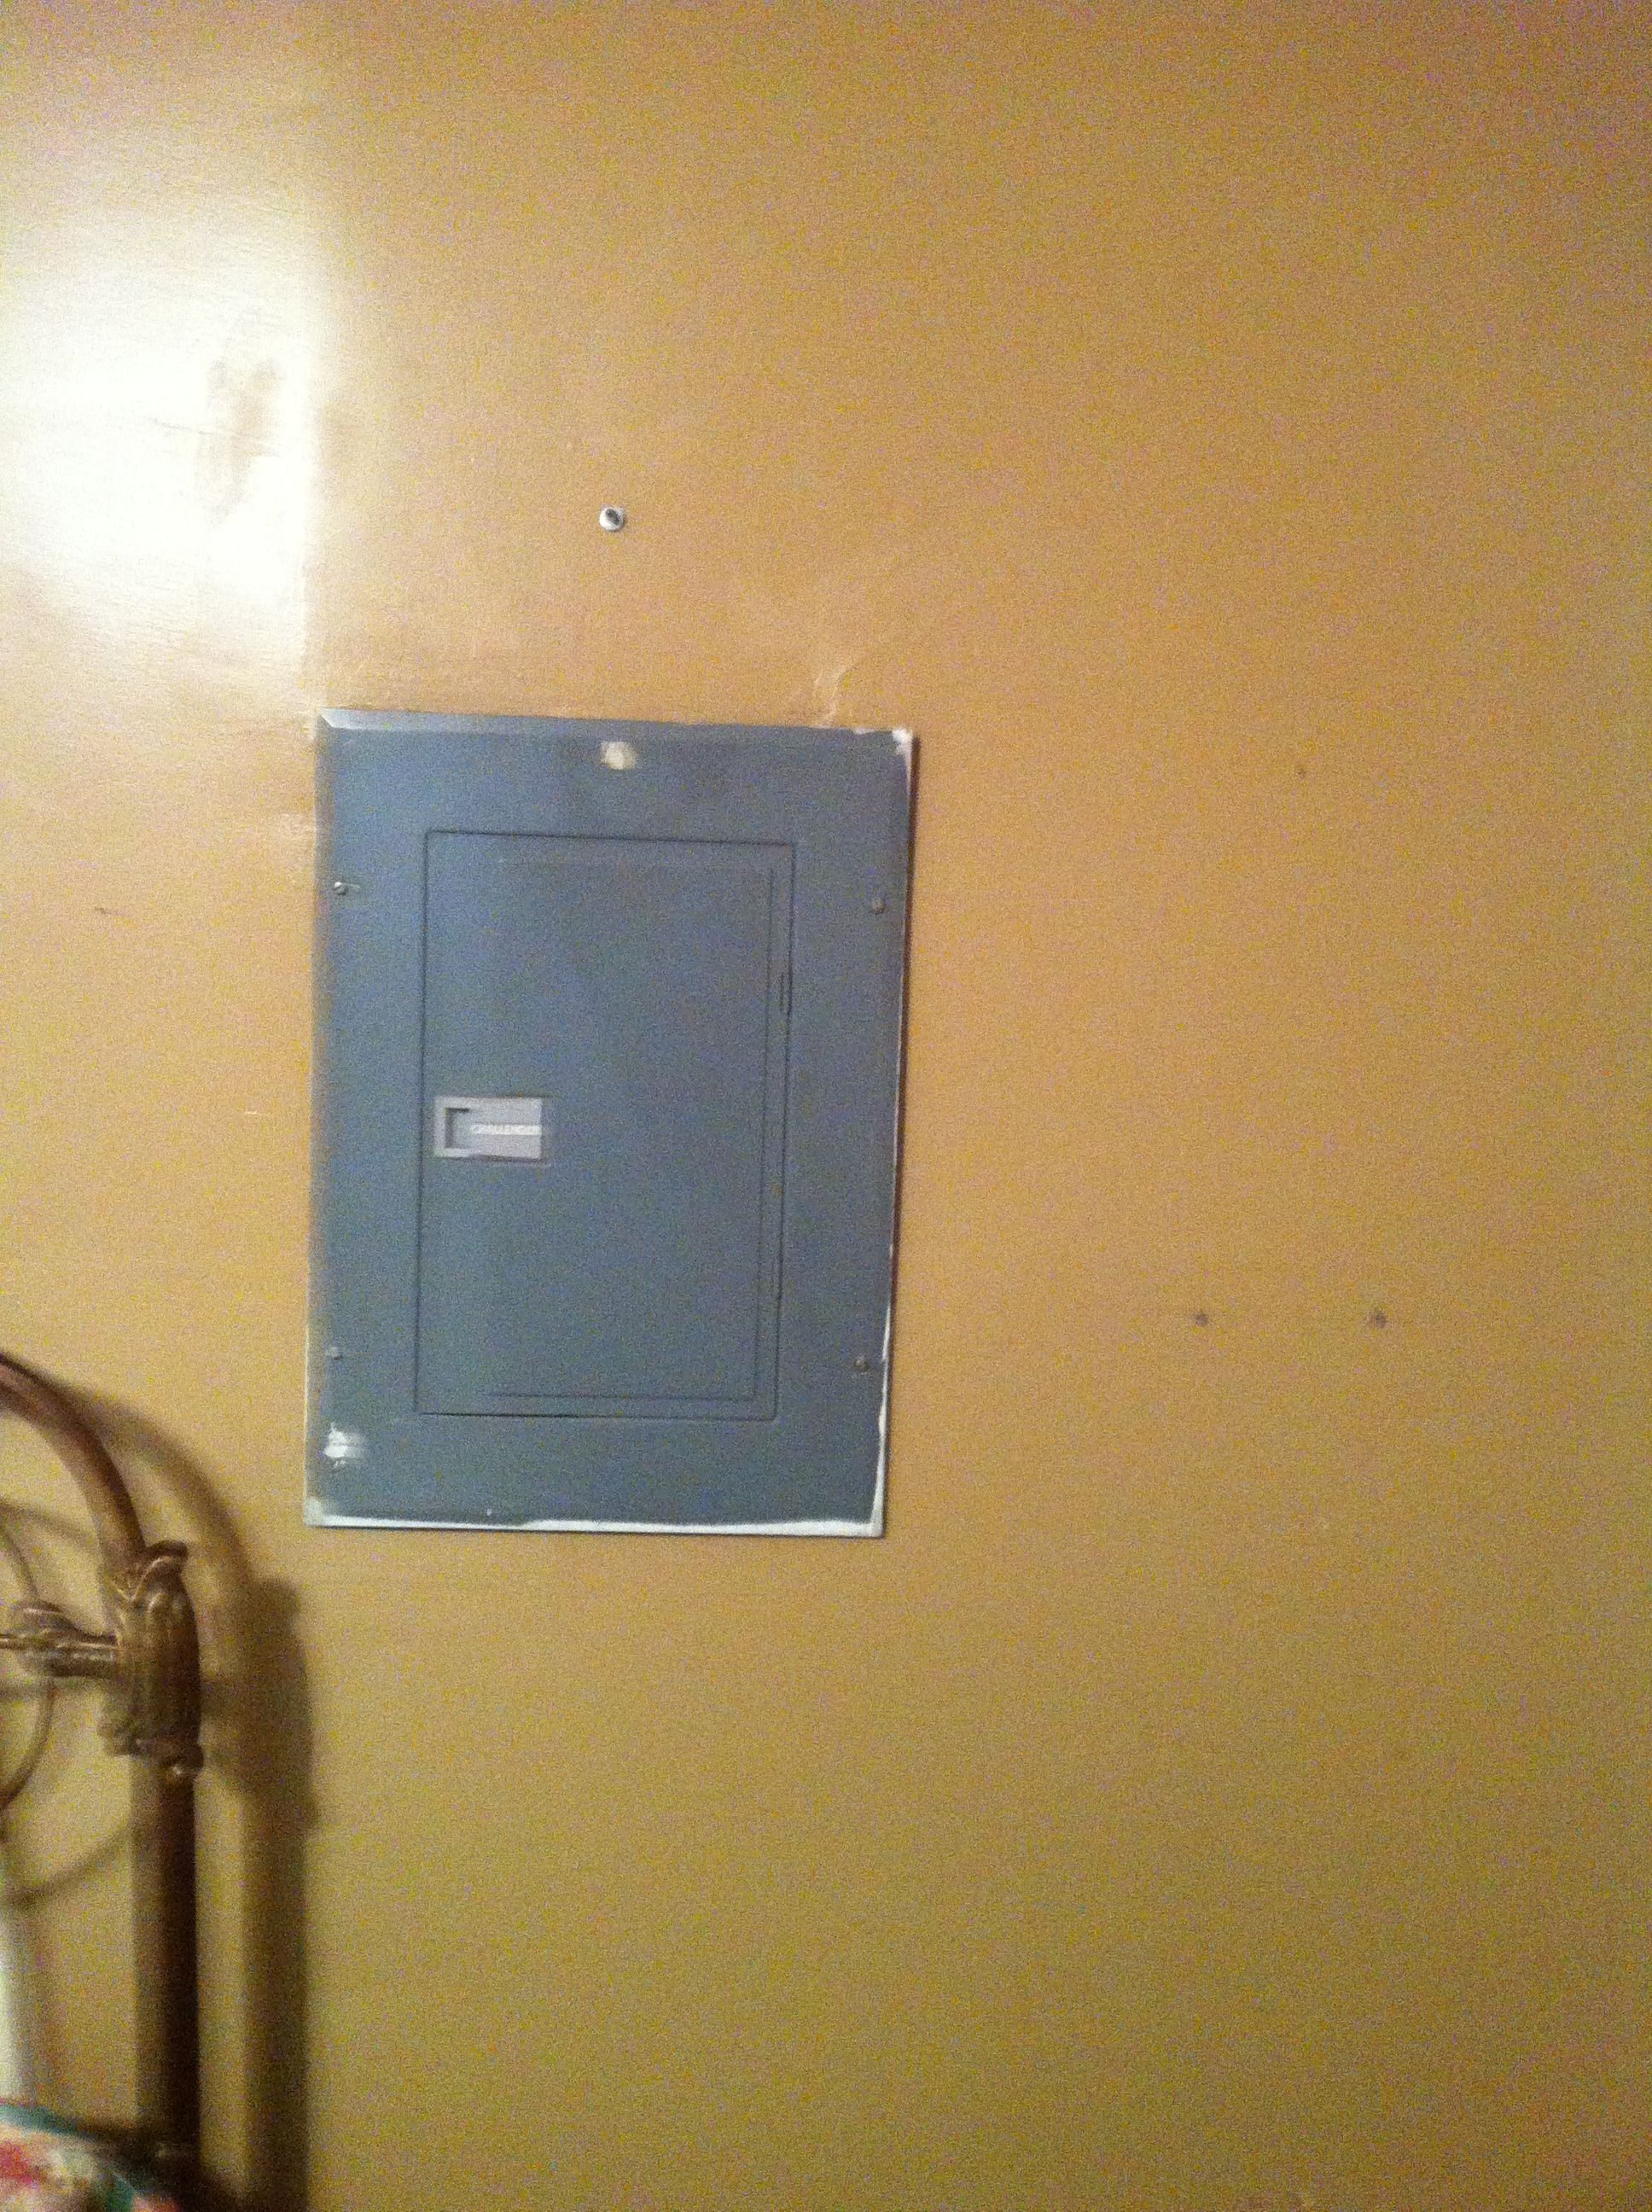 Ugly Fuse Box Cover Isnt Even Flush With The Wall Jens Old